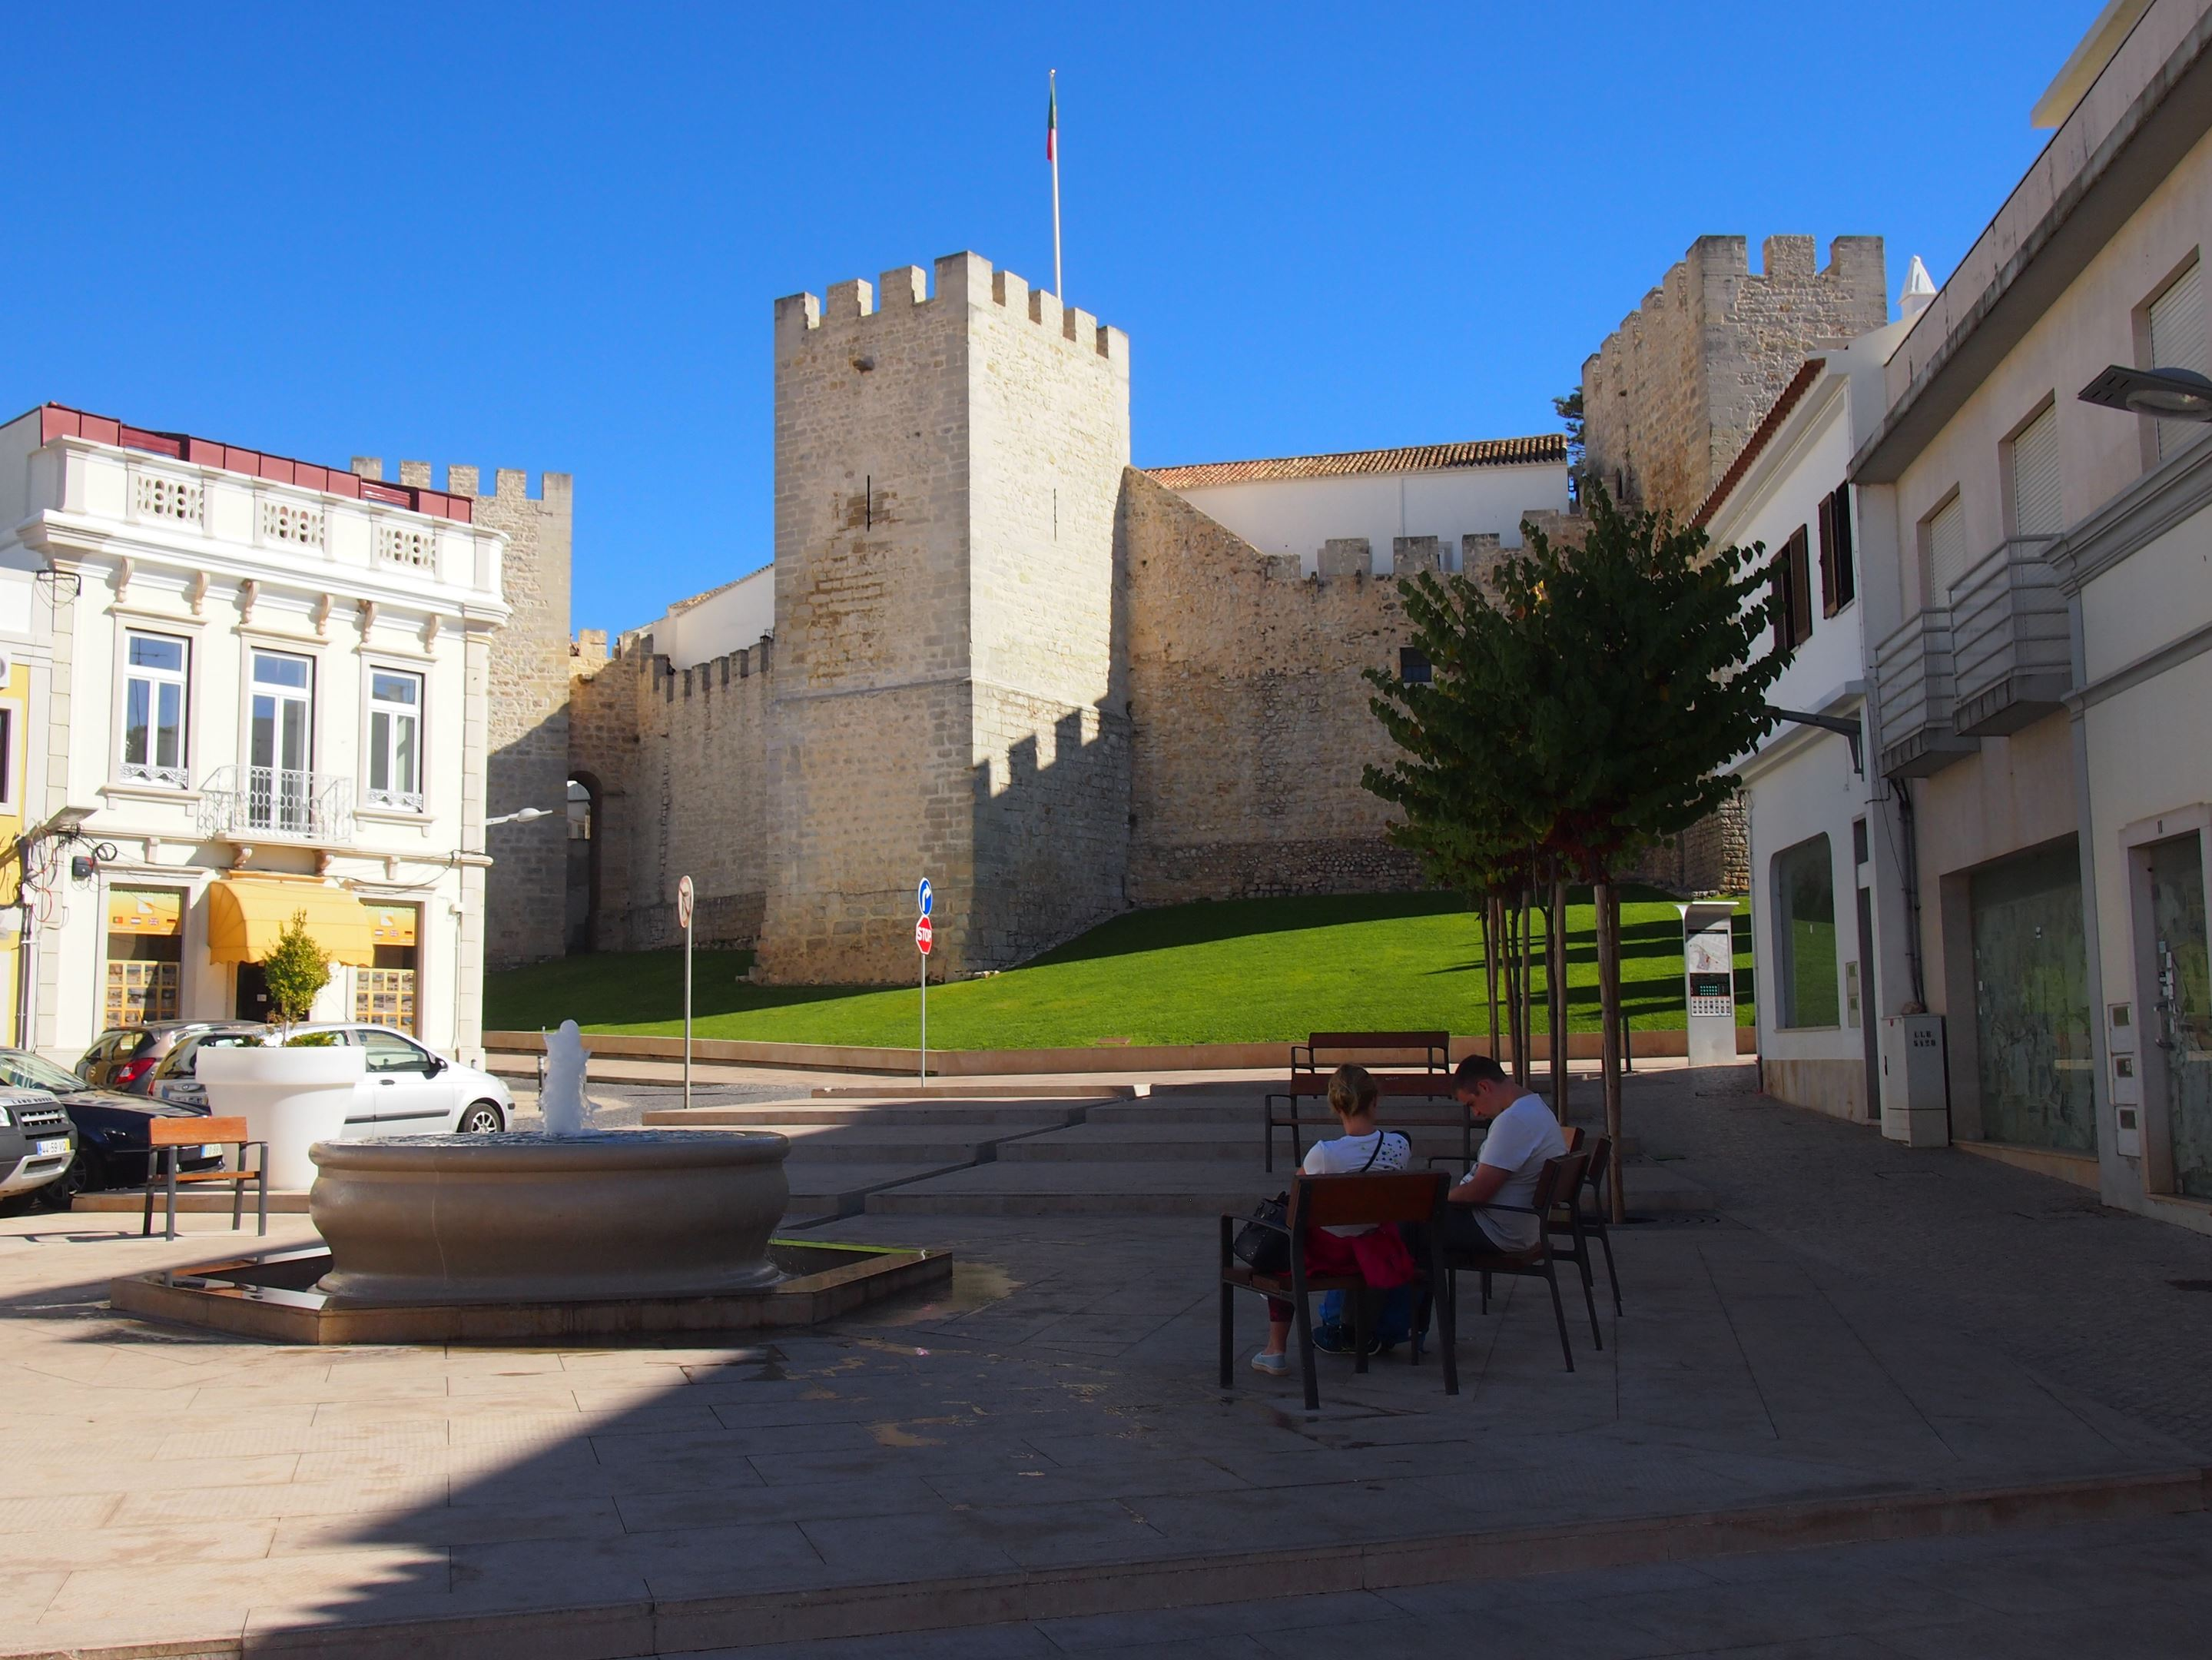 Castle of Loulé, Algarve